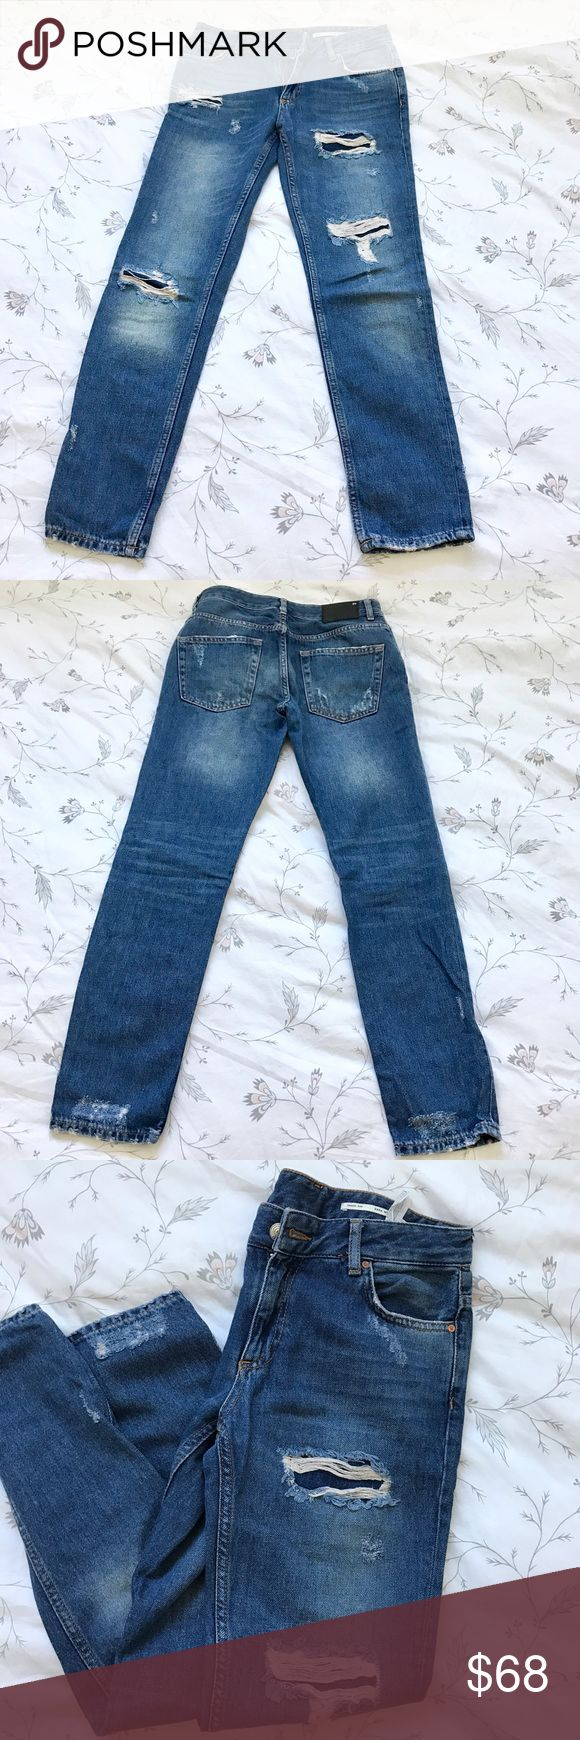 Zara women's jeans , medium rise, relaxed fit Zara women's jeans , medium rise, relaxed fit. Only worn one time , just like new . Zara Jeans